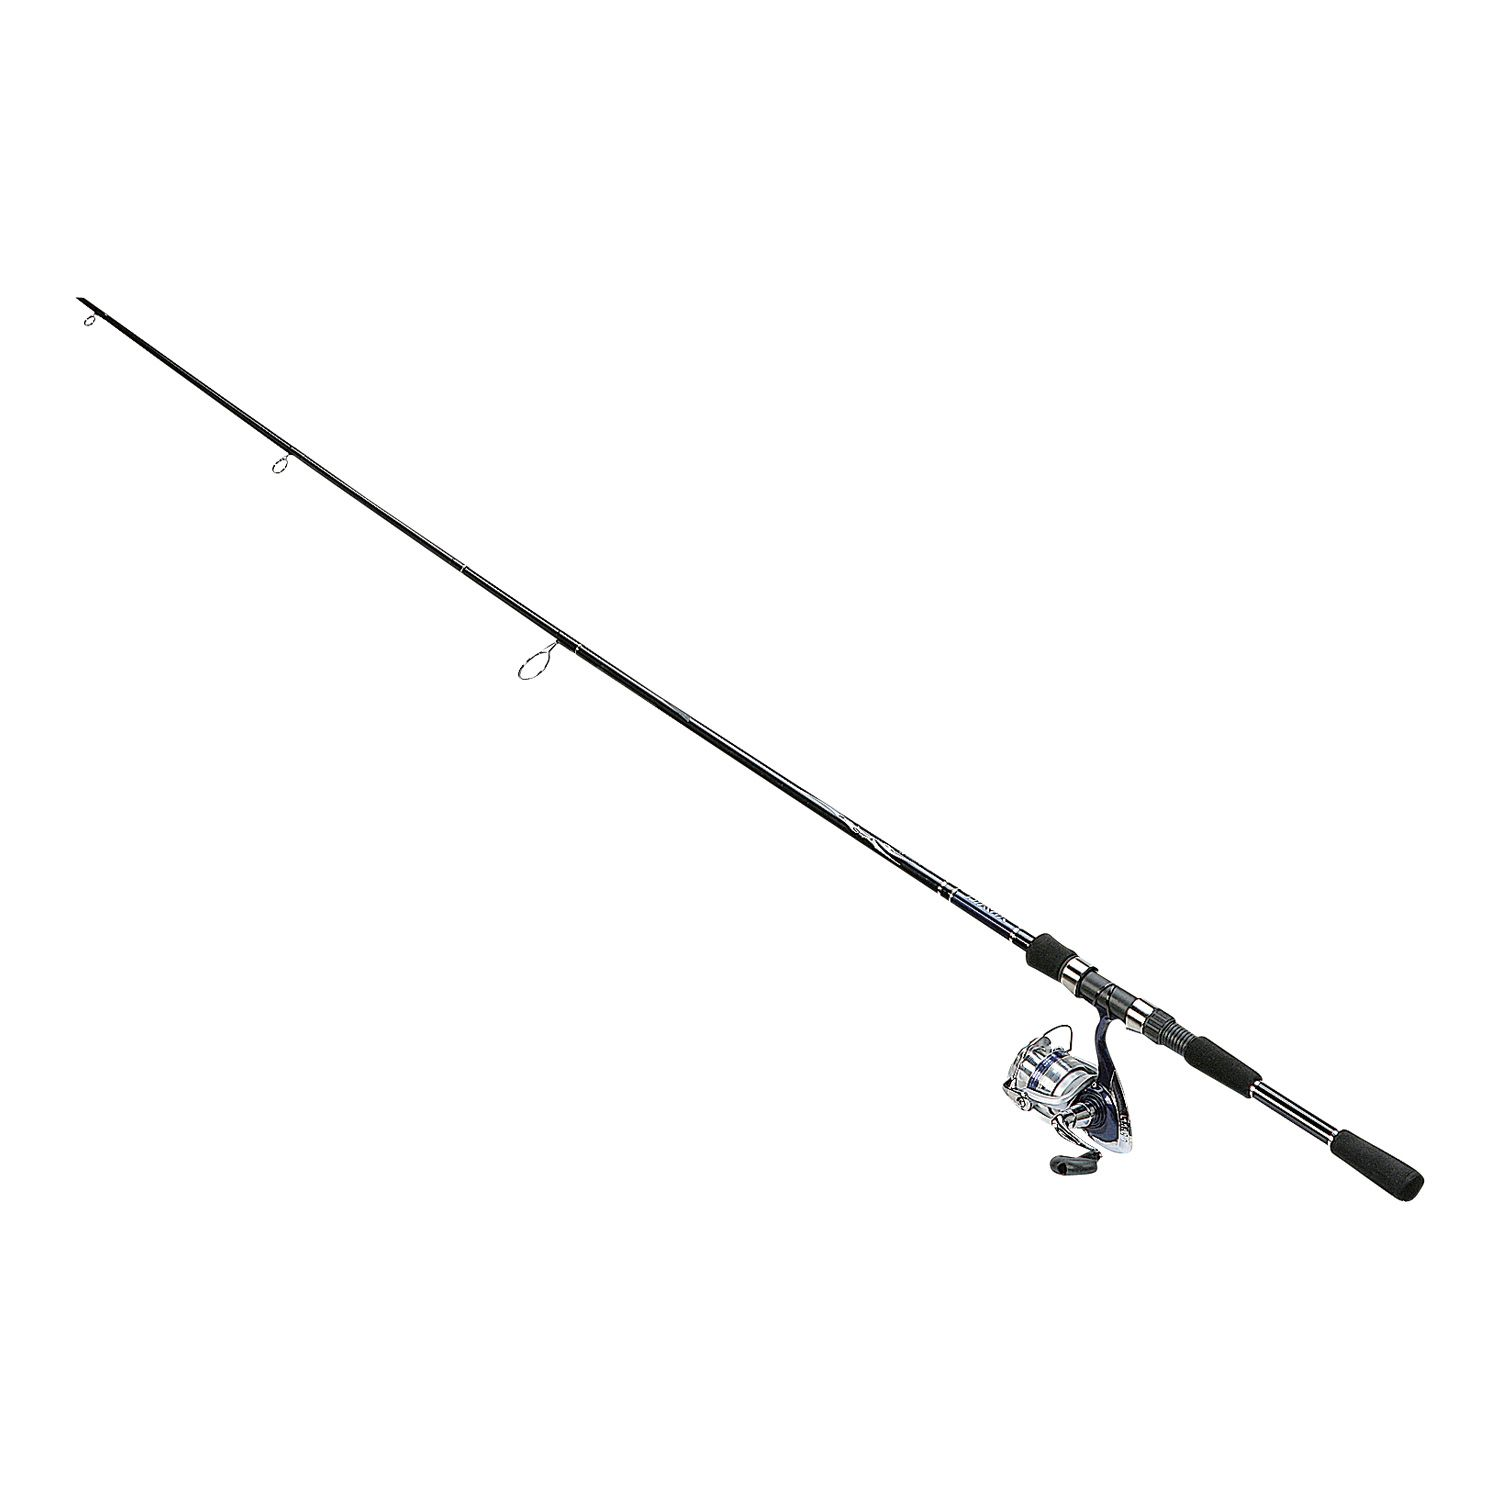 Fishing pole clipart clipart suggest for Trout fishing rod and reel